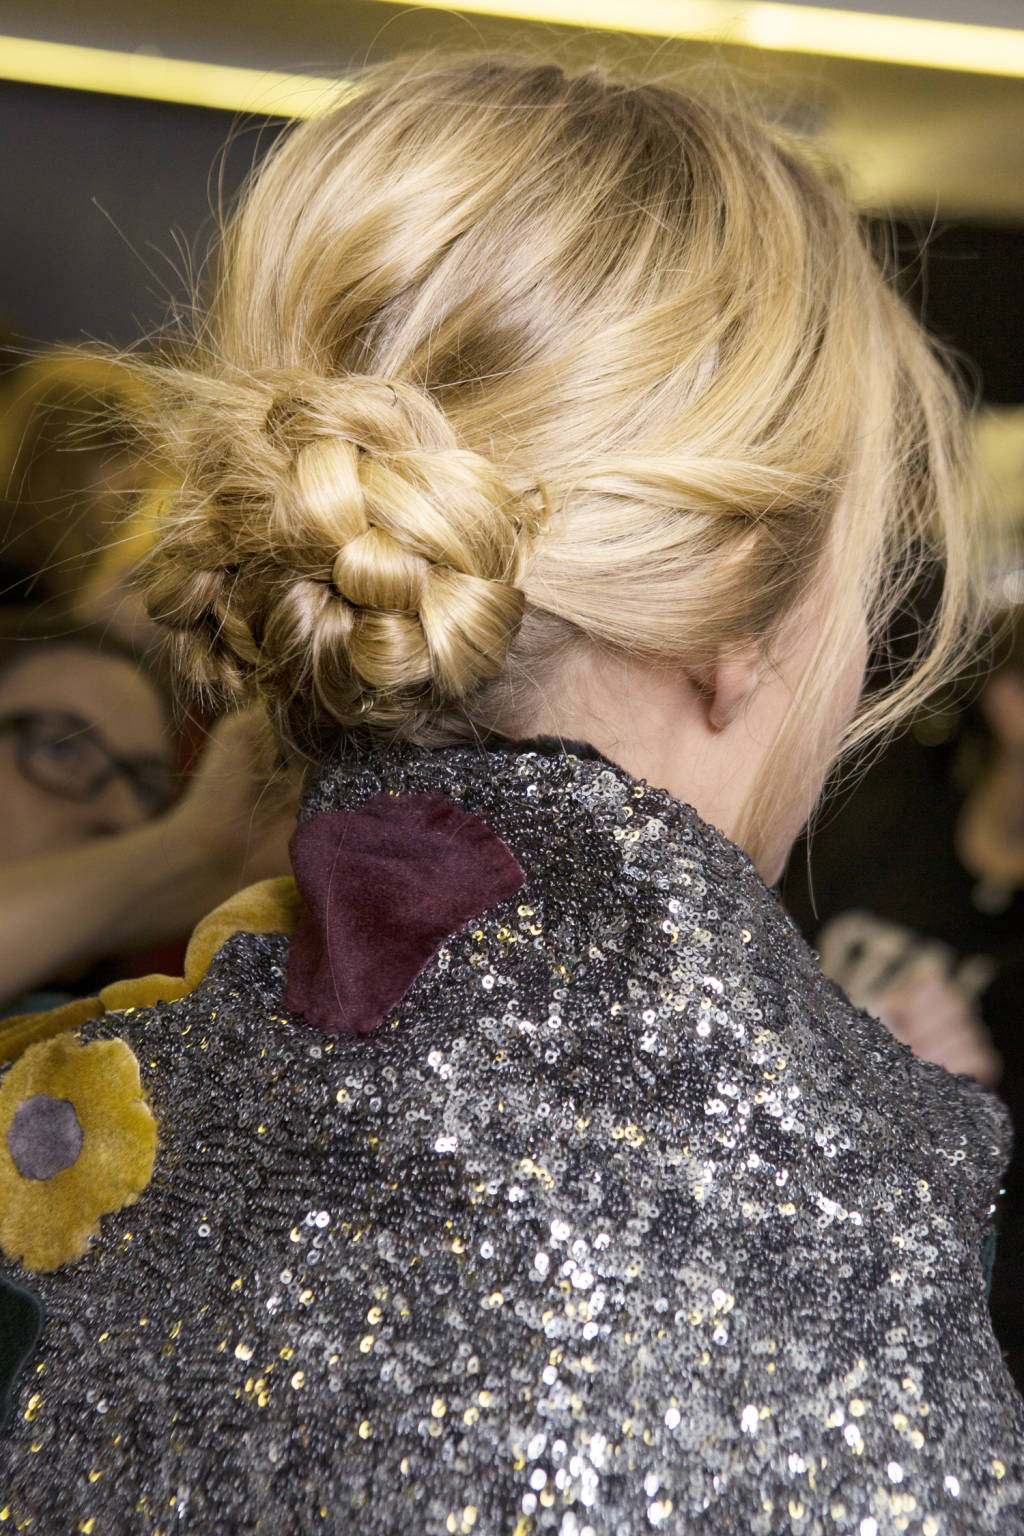 Plaited bun created for Dolce & Gabbana Autumn 2015